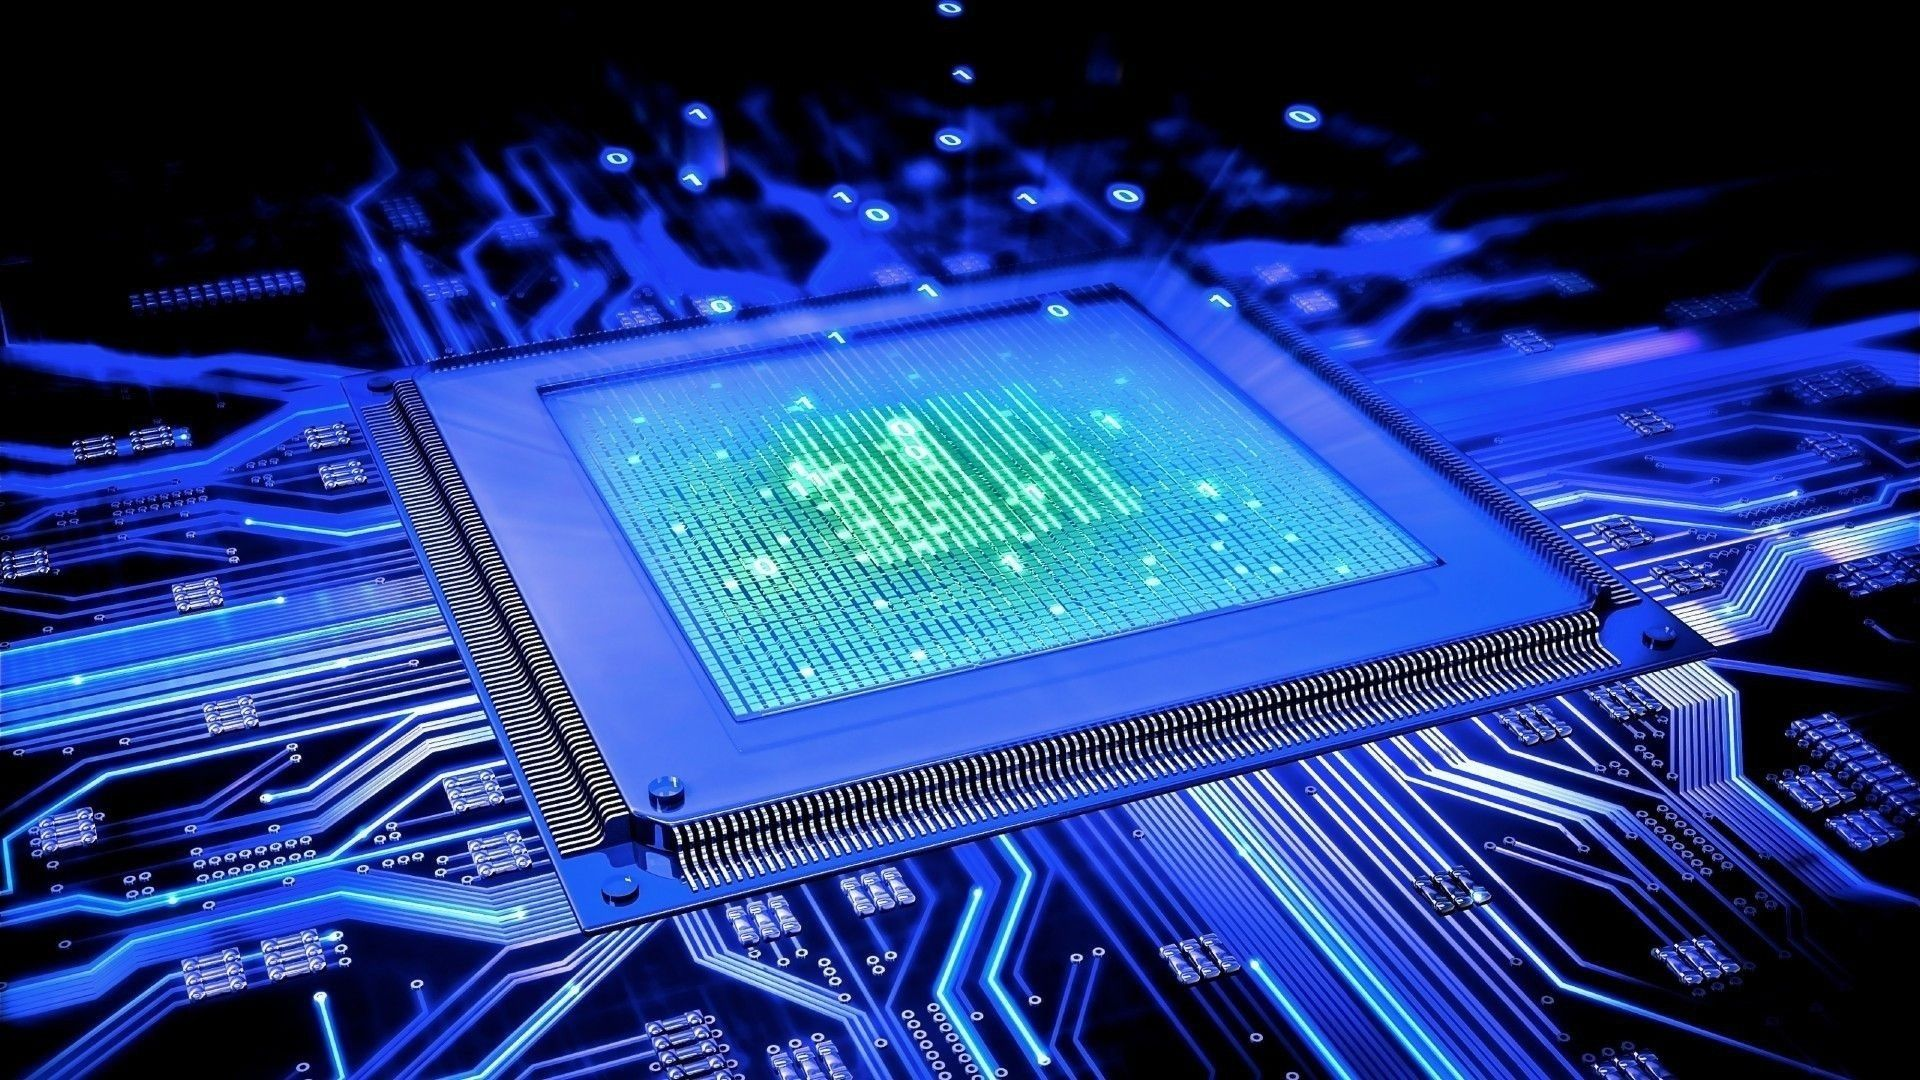 10 New Computer Science Wallpaper Hd Full Hd 1080p For Pc Desktop Technology Wallpaper Computer Cpu Computer Technology